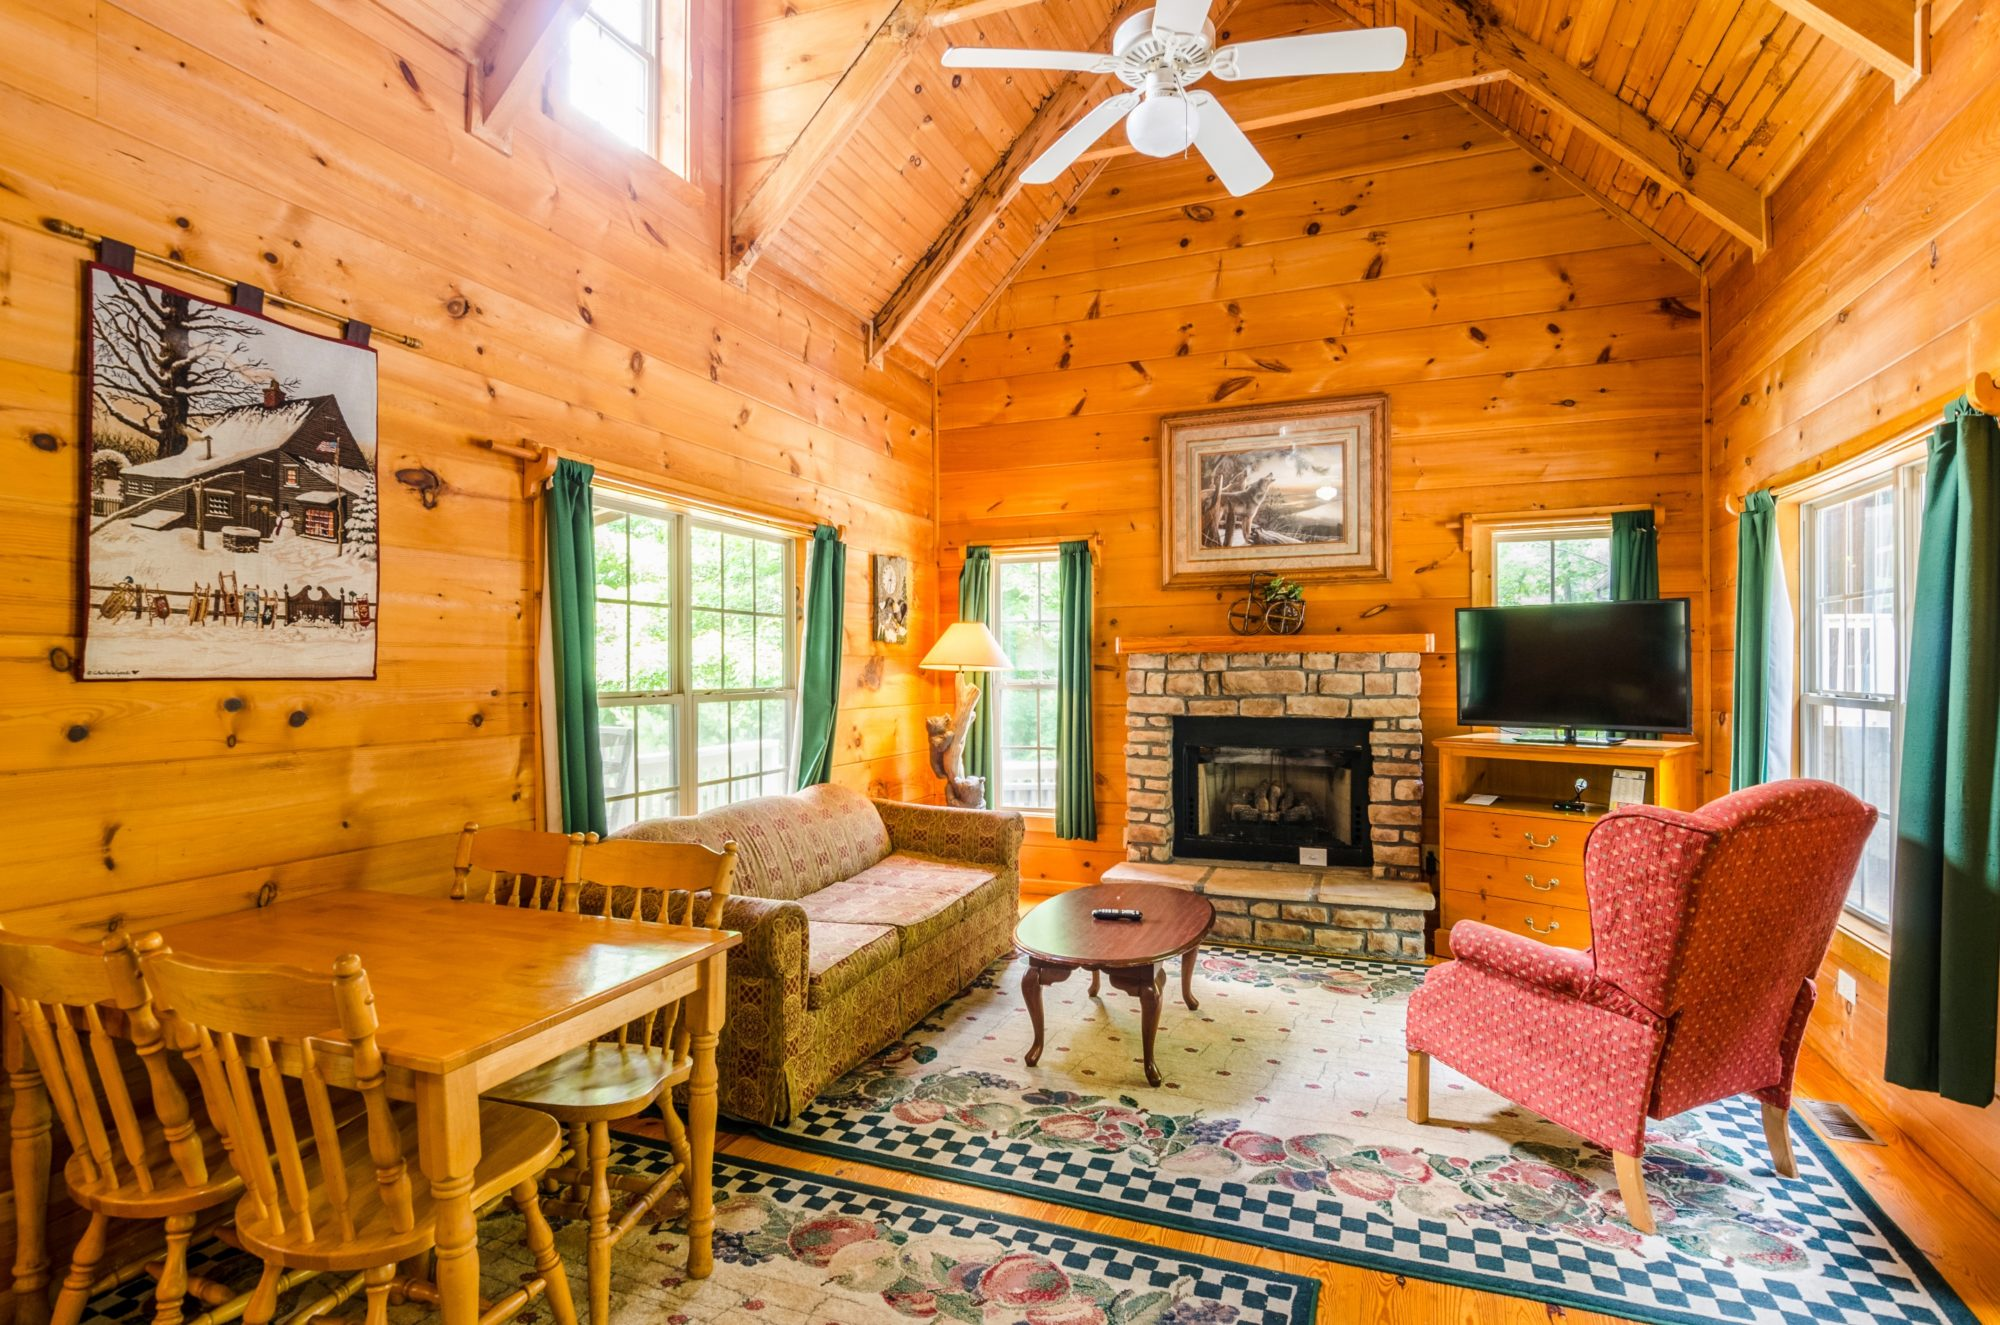 Wood interior with wooden table and chairs, sofa, wing easy chairs, coffee table, corner decorative floor lamp, fireplace with imitation log fire, corner storage unit with drawers and flat screen tv, wall mounted art, wooden floor with rugs